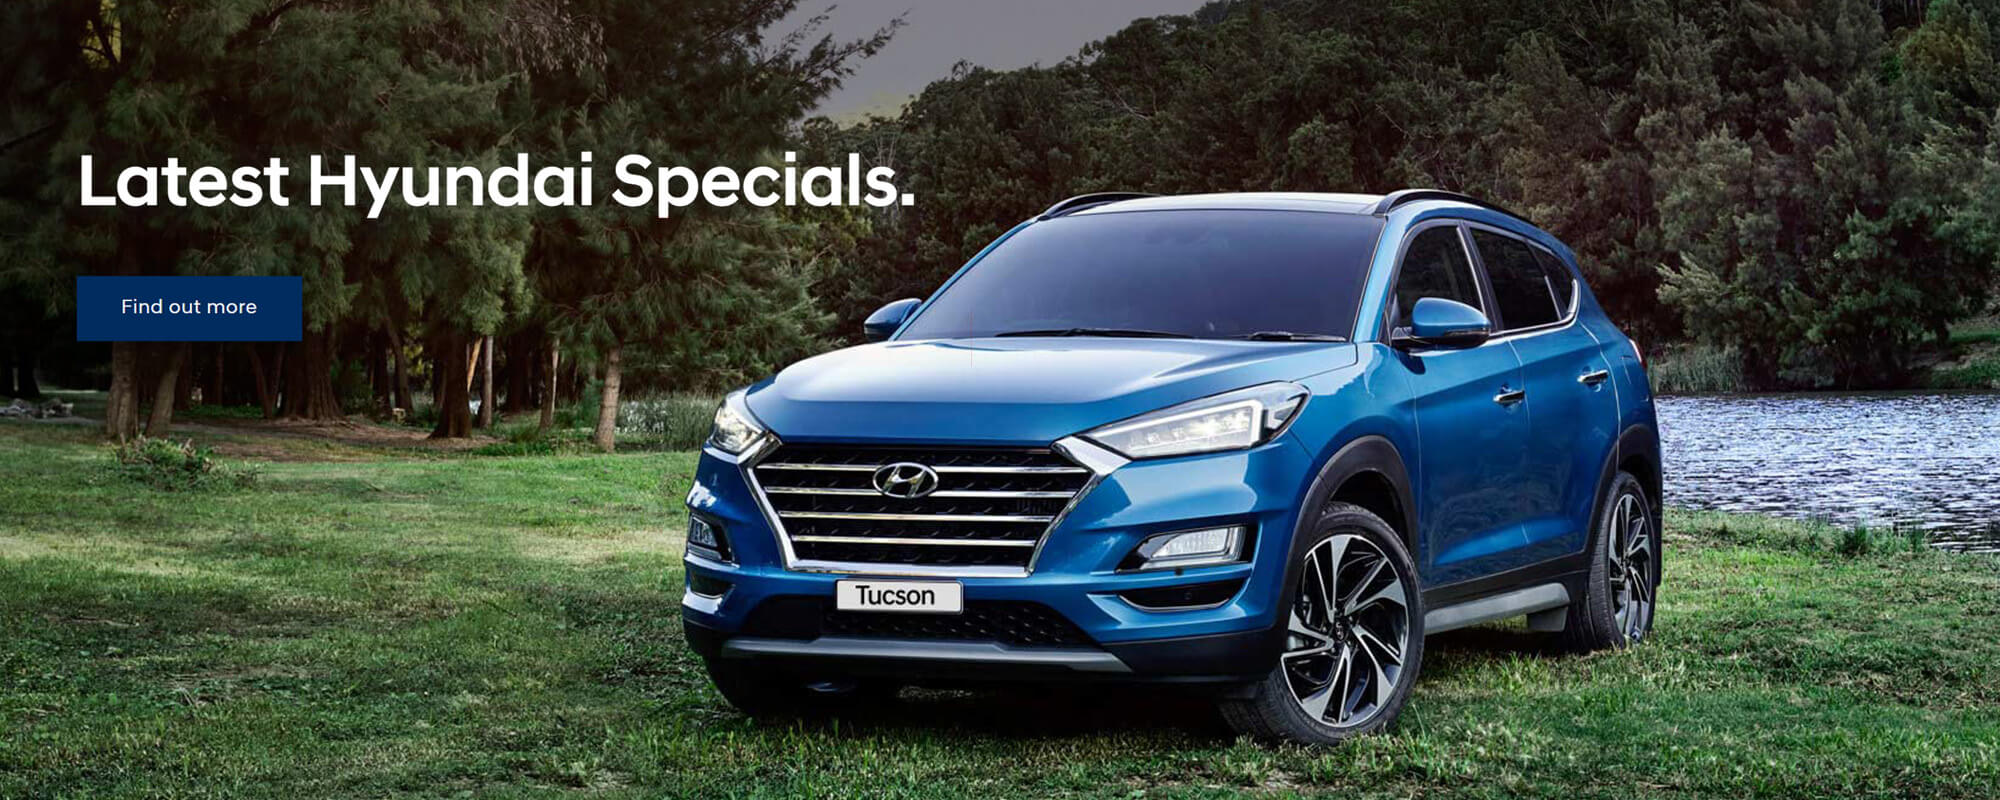 Latest Hyundai Specials